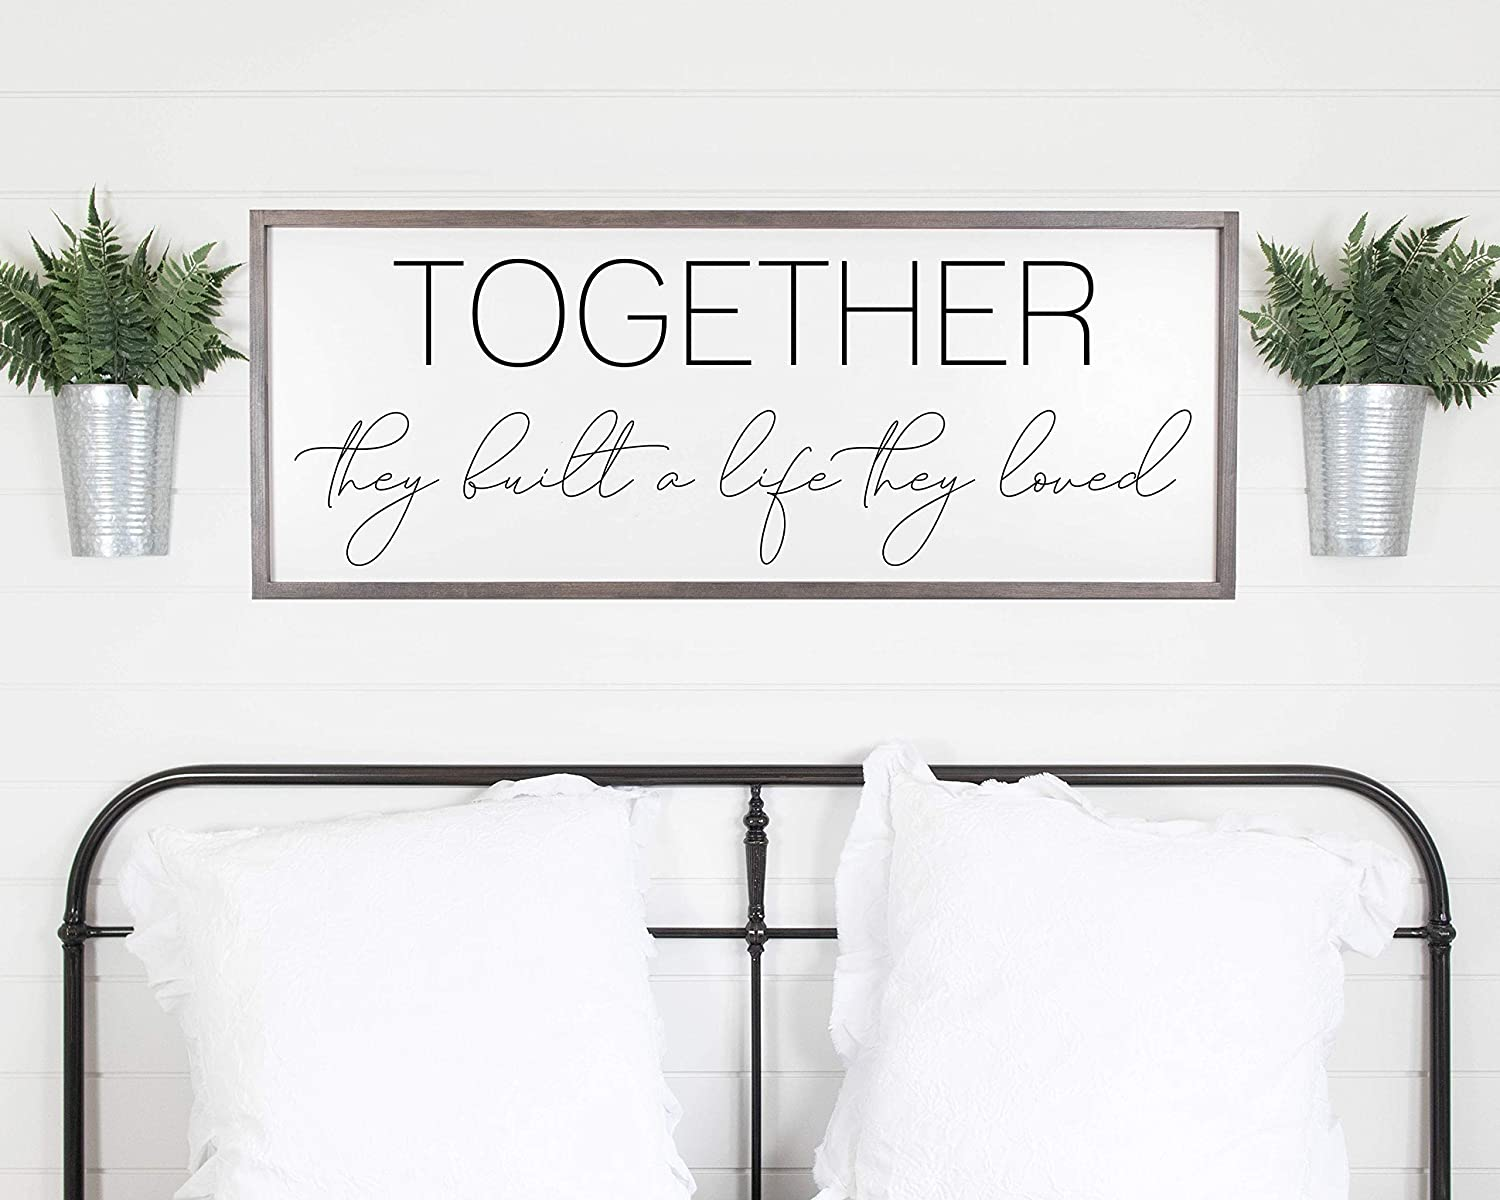 Ced454sy And So Together They Built A Life They Loved Sign Bedroom Wall Decor Sign Above Bed Master Bedroom Sign Framed Wood Signs Wedding Gift Amazon Co Uk Garden Outdoors